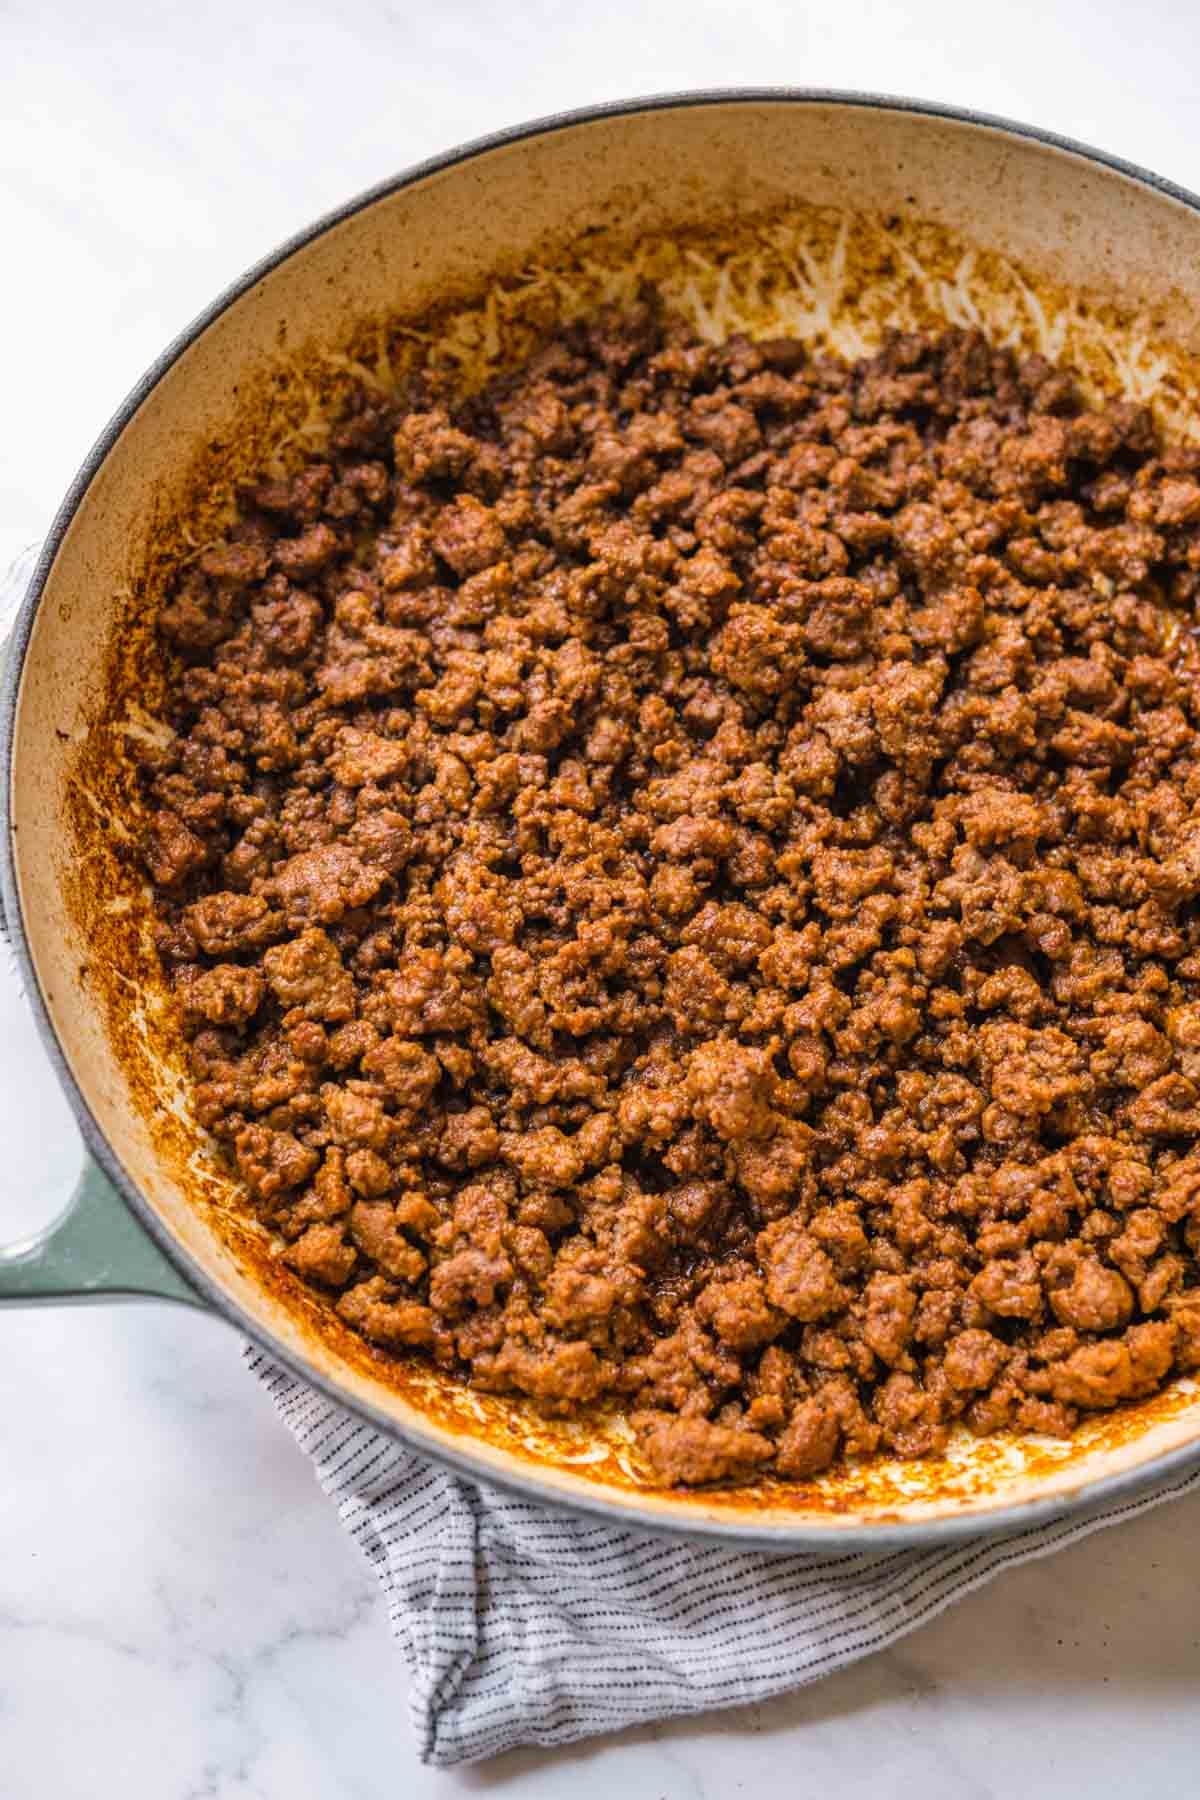 Seasoned ground beef in skillet for Taco Salad